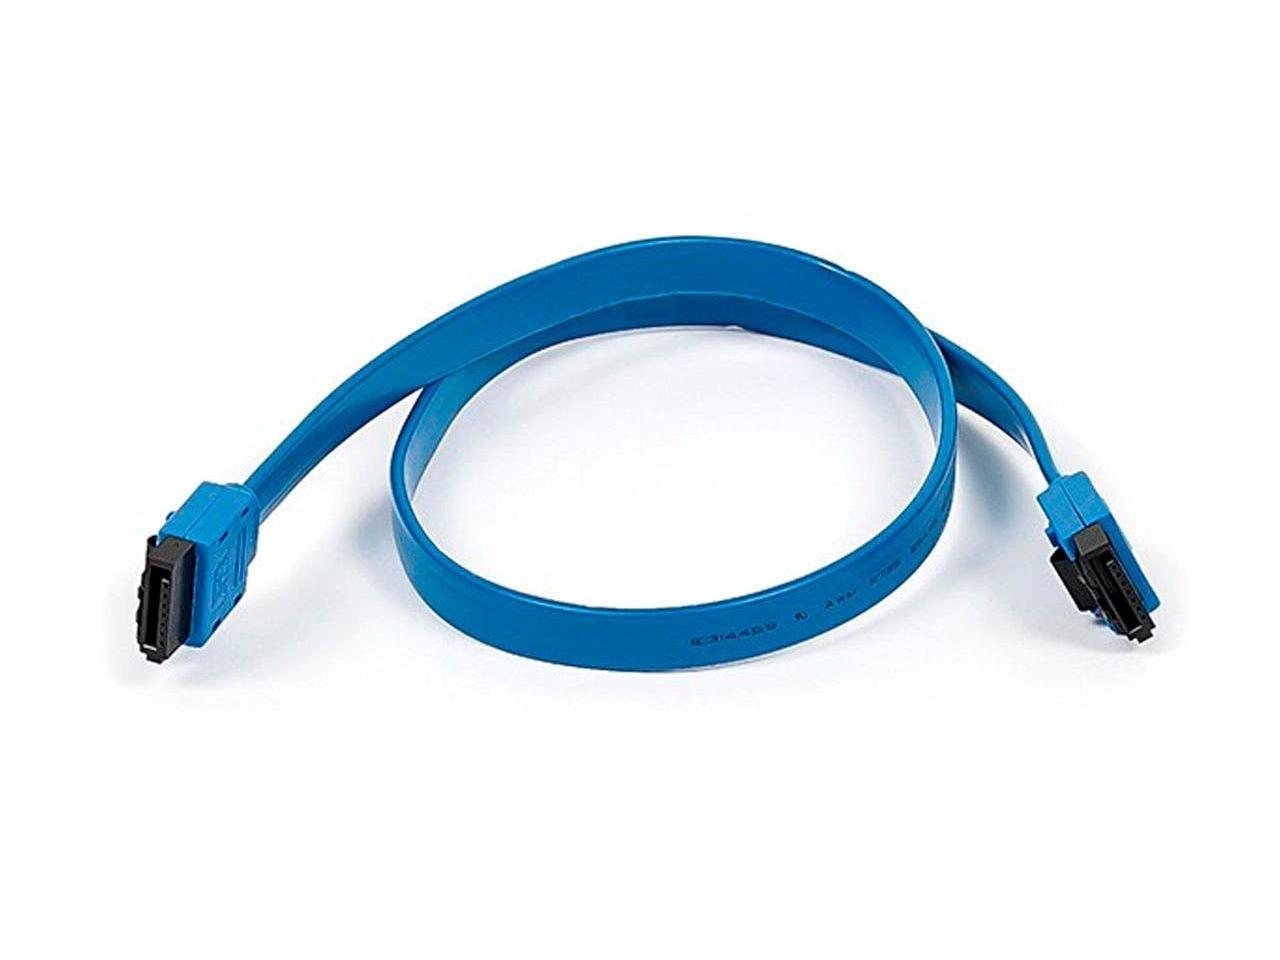 10 Inch CD Driver Monoprice SATA 6Gbps Straight Cable with Locking Latch Red Compatible with SSD SATA HDD CD Writer